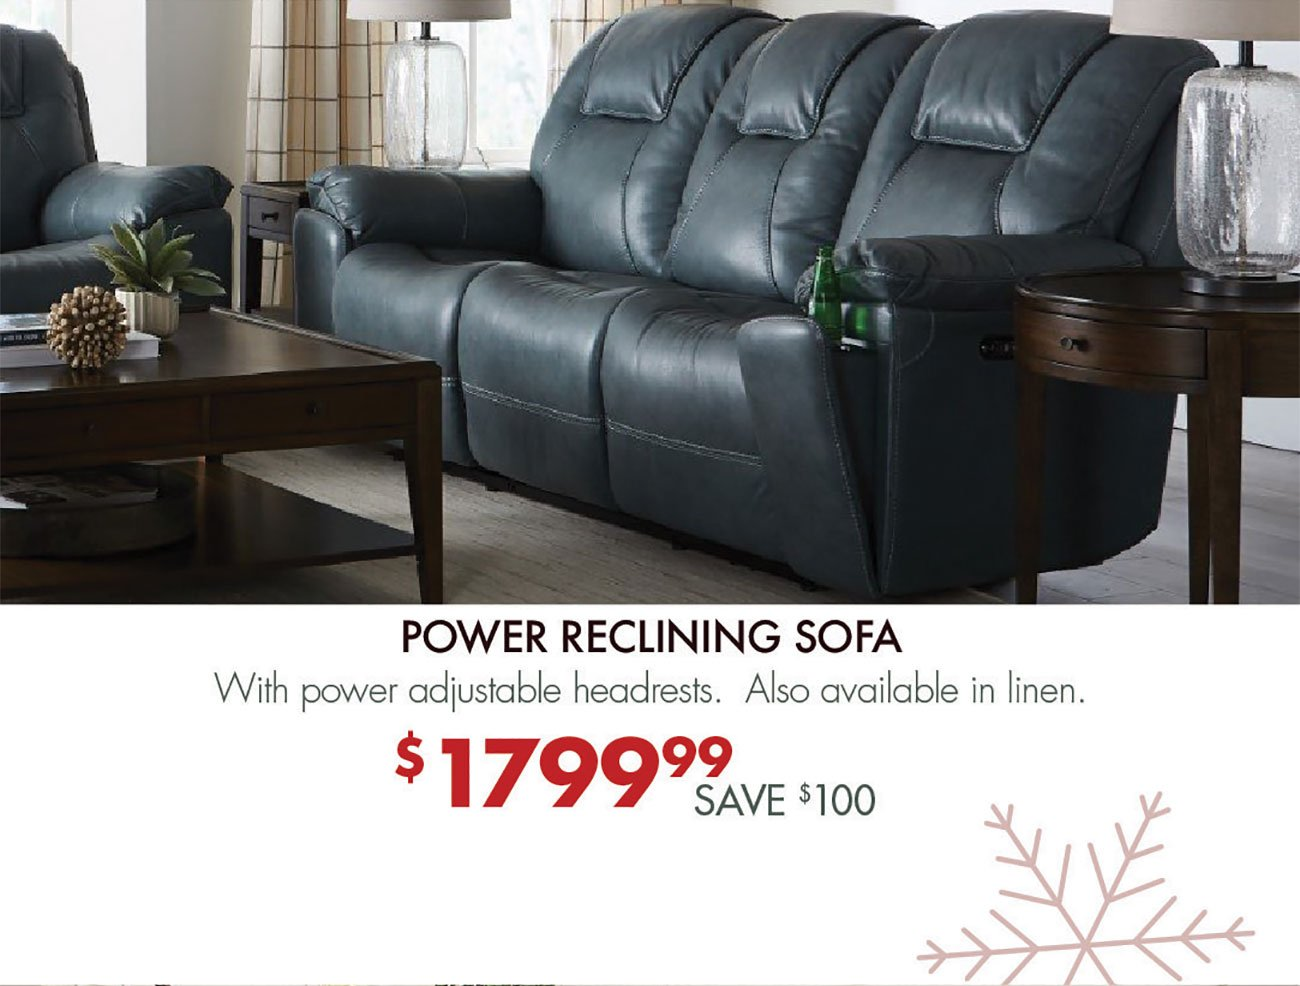 Power-Reclining-Sofa-Blue-Leather